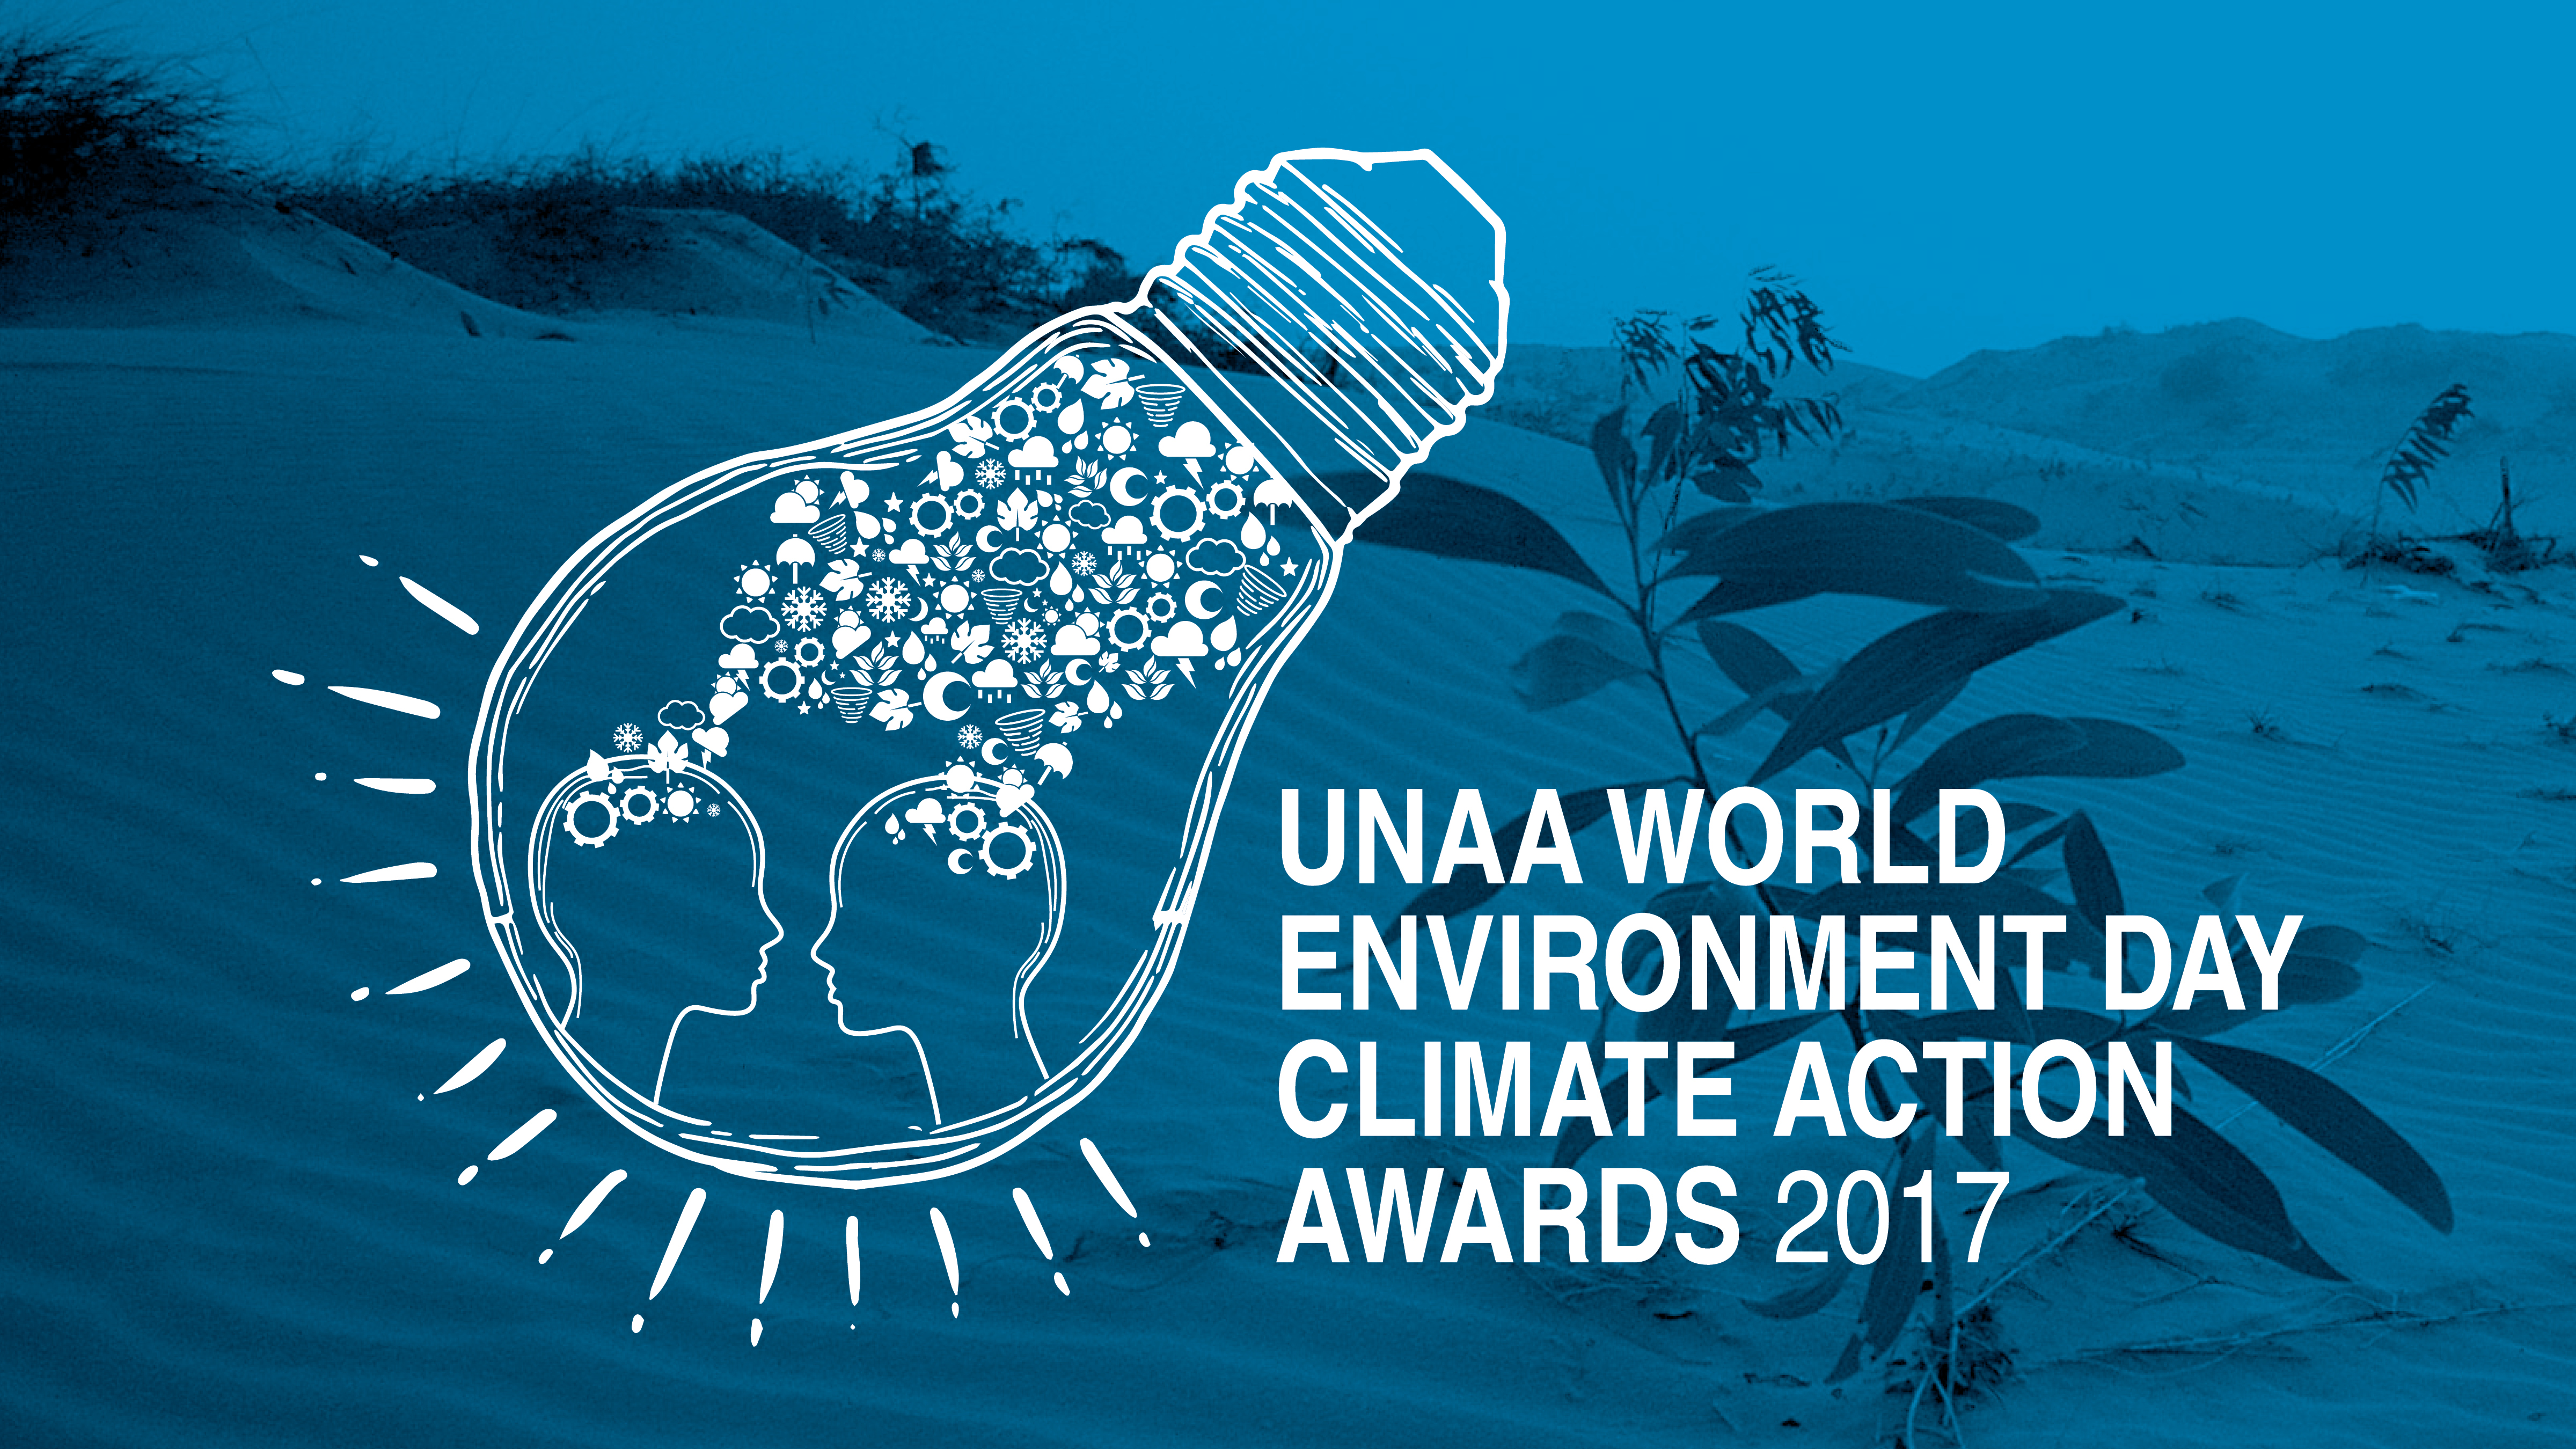 UNAA_Climate_banner16x9